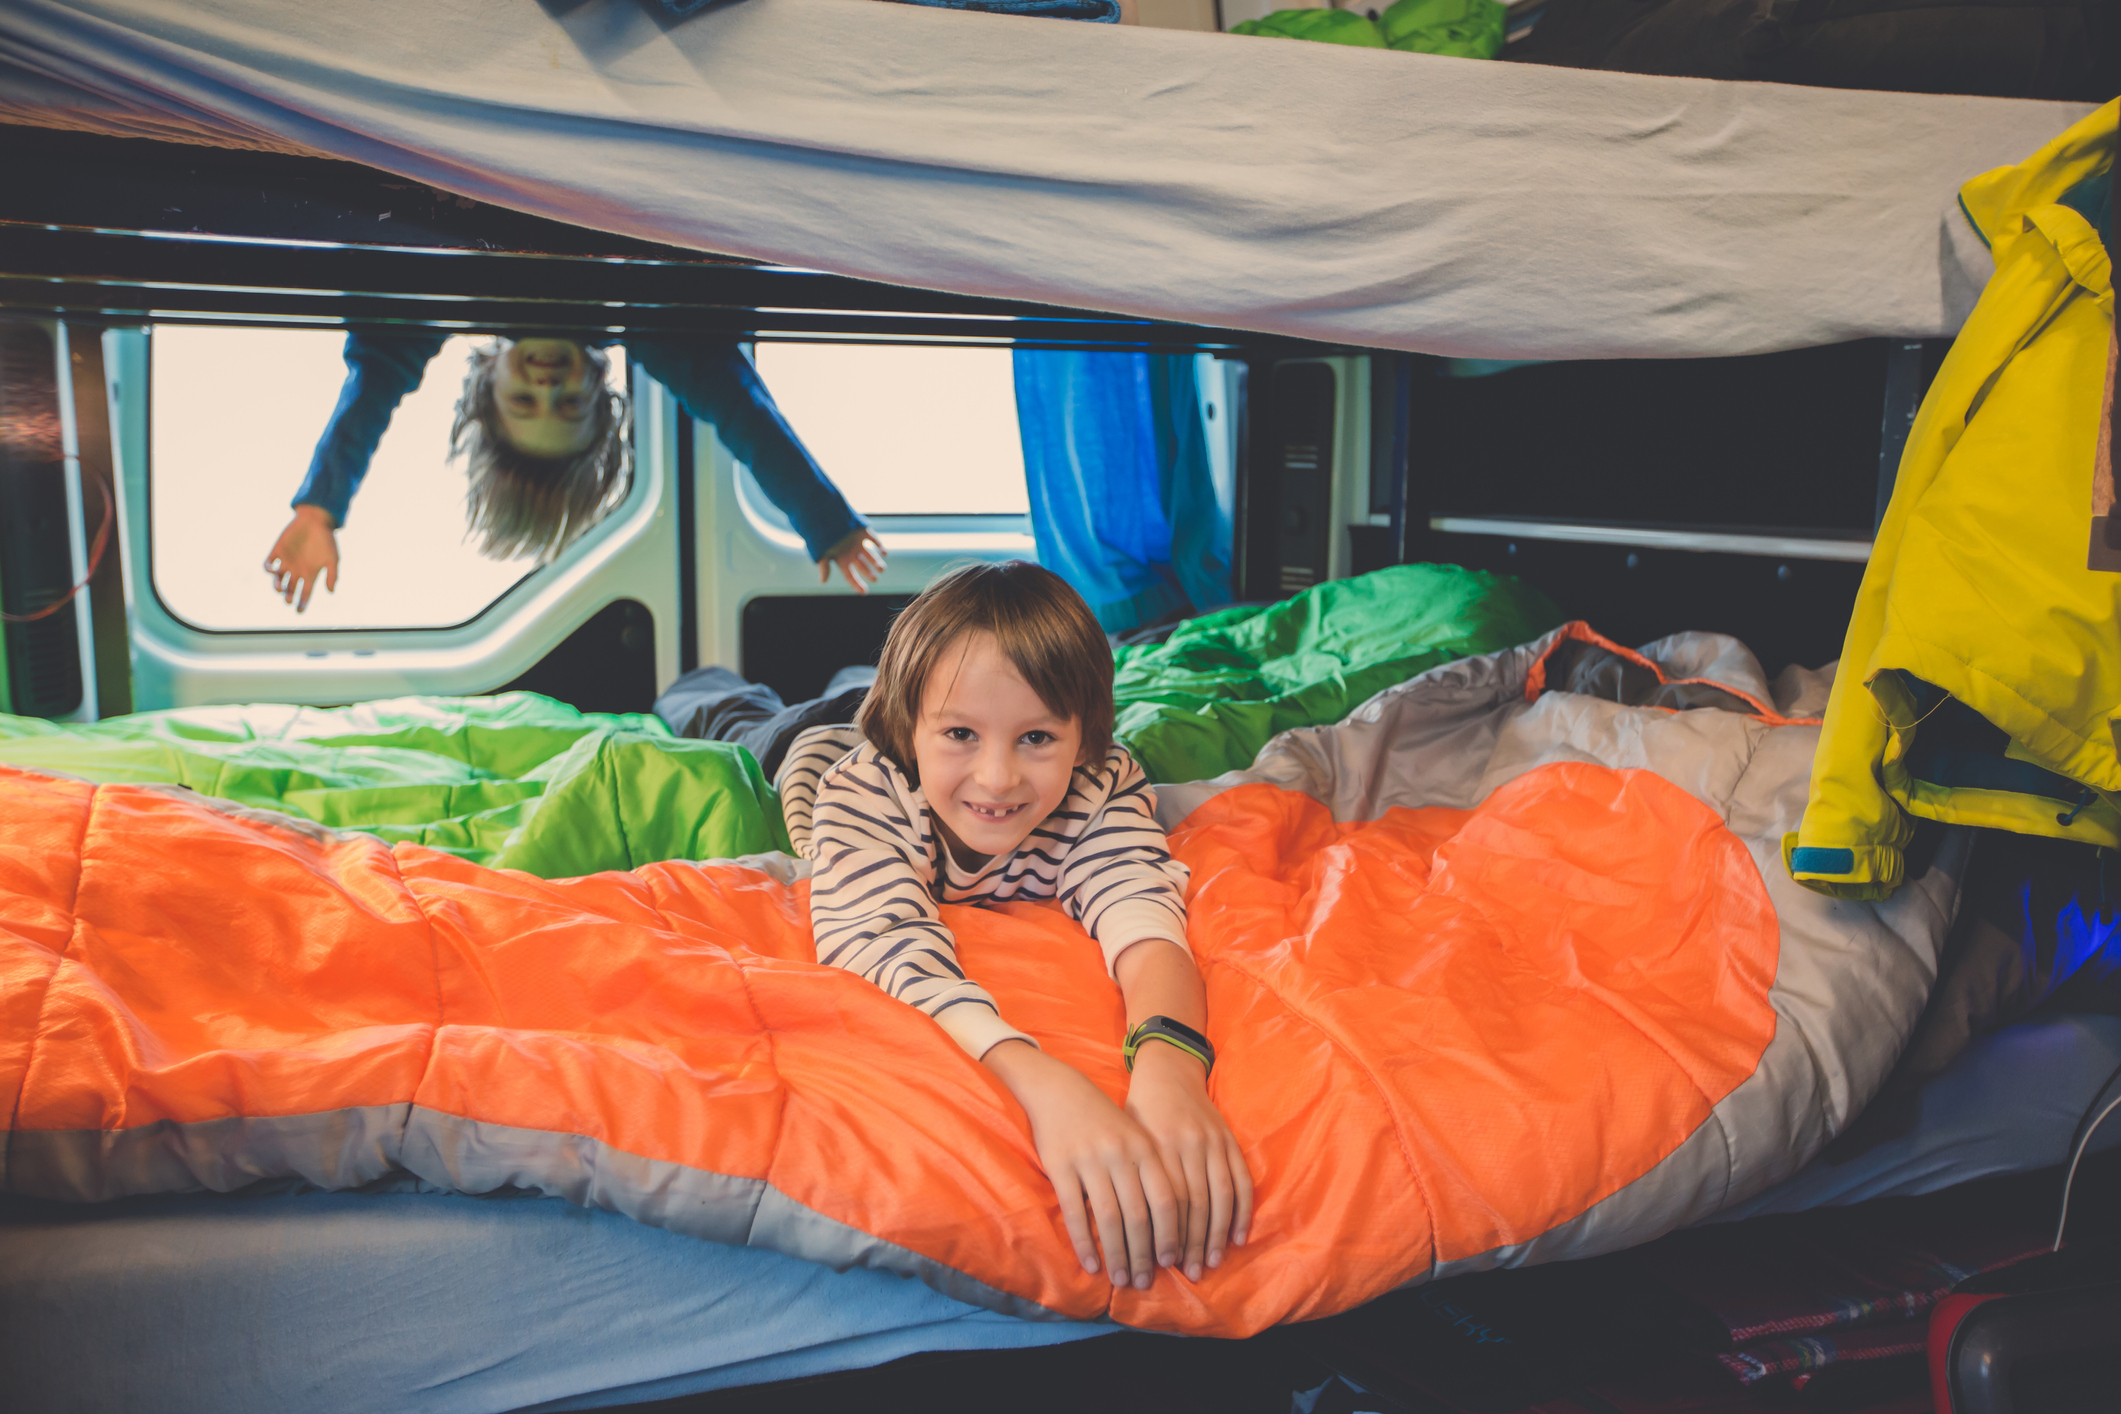 Children, having fun in camper van while heavy raining outdoors, playing and making mischiefs together